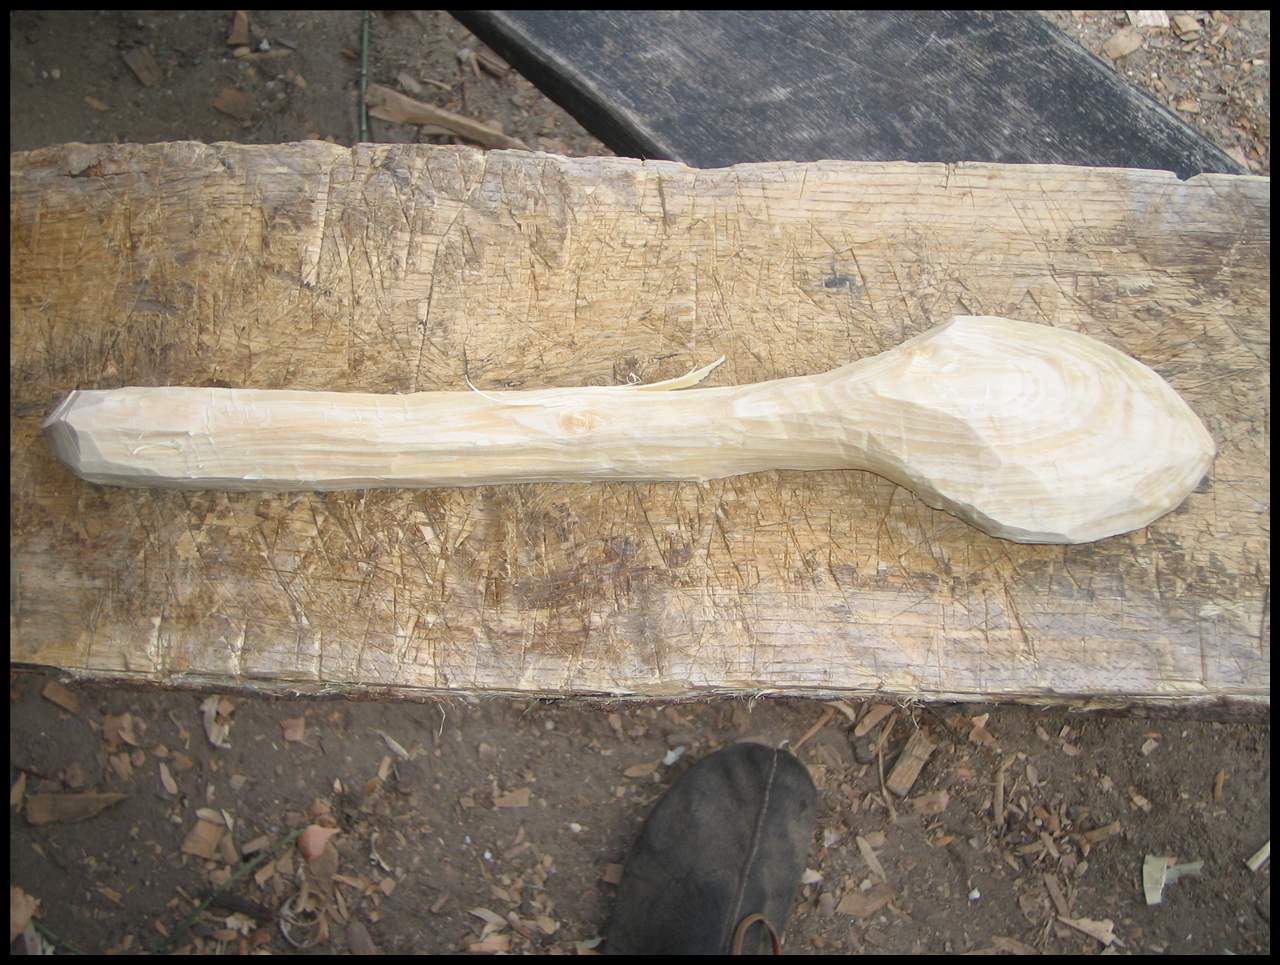 Picture of Cut the Rougt Shape of the Spoon With the Axe.